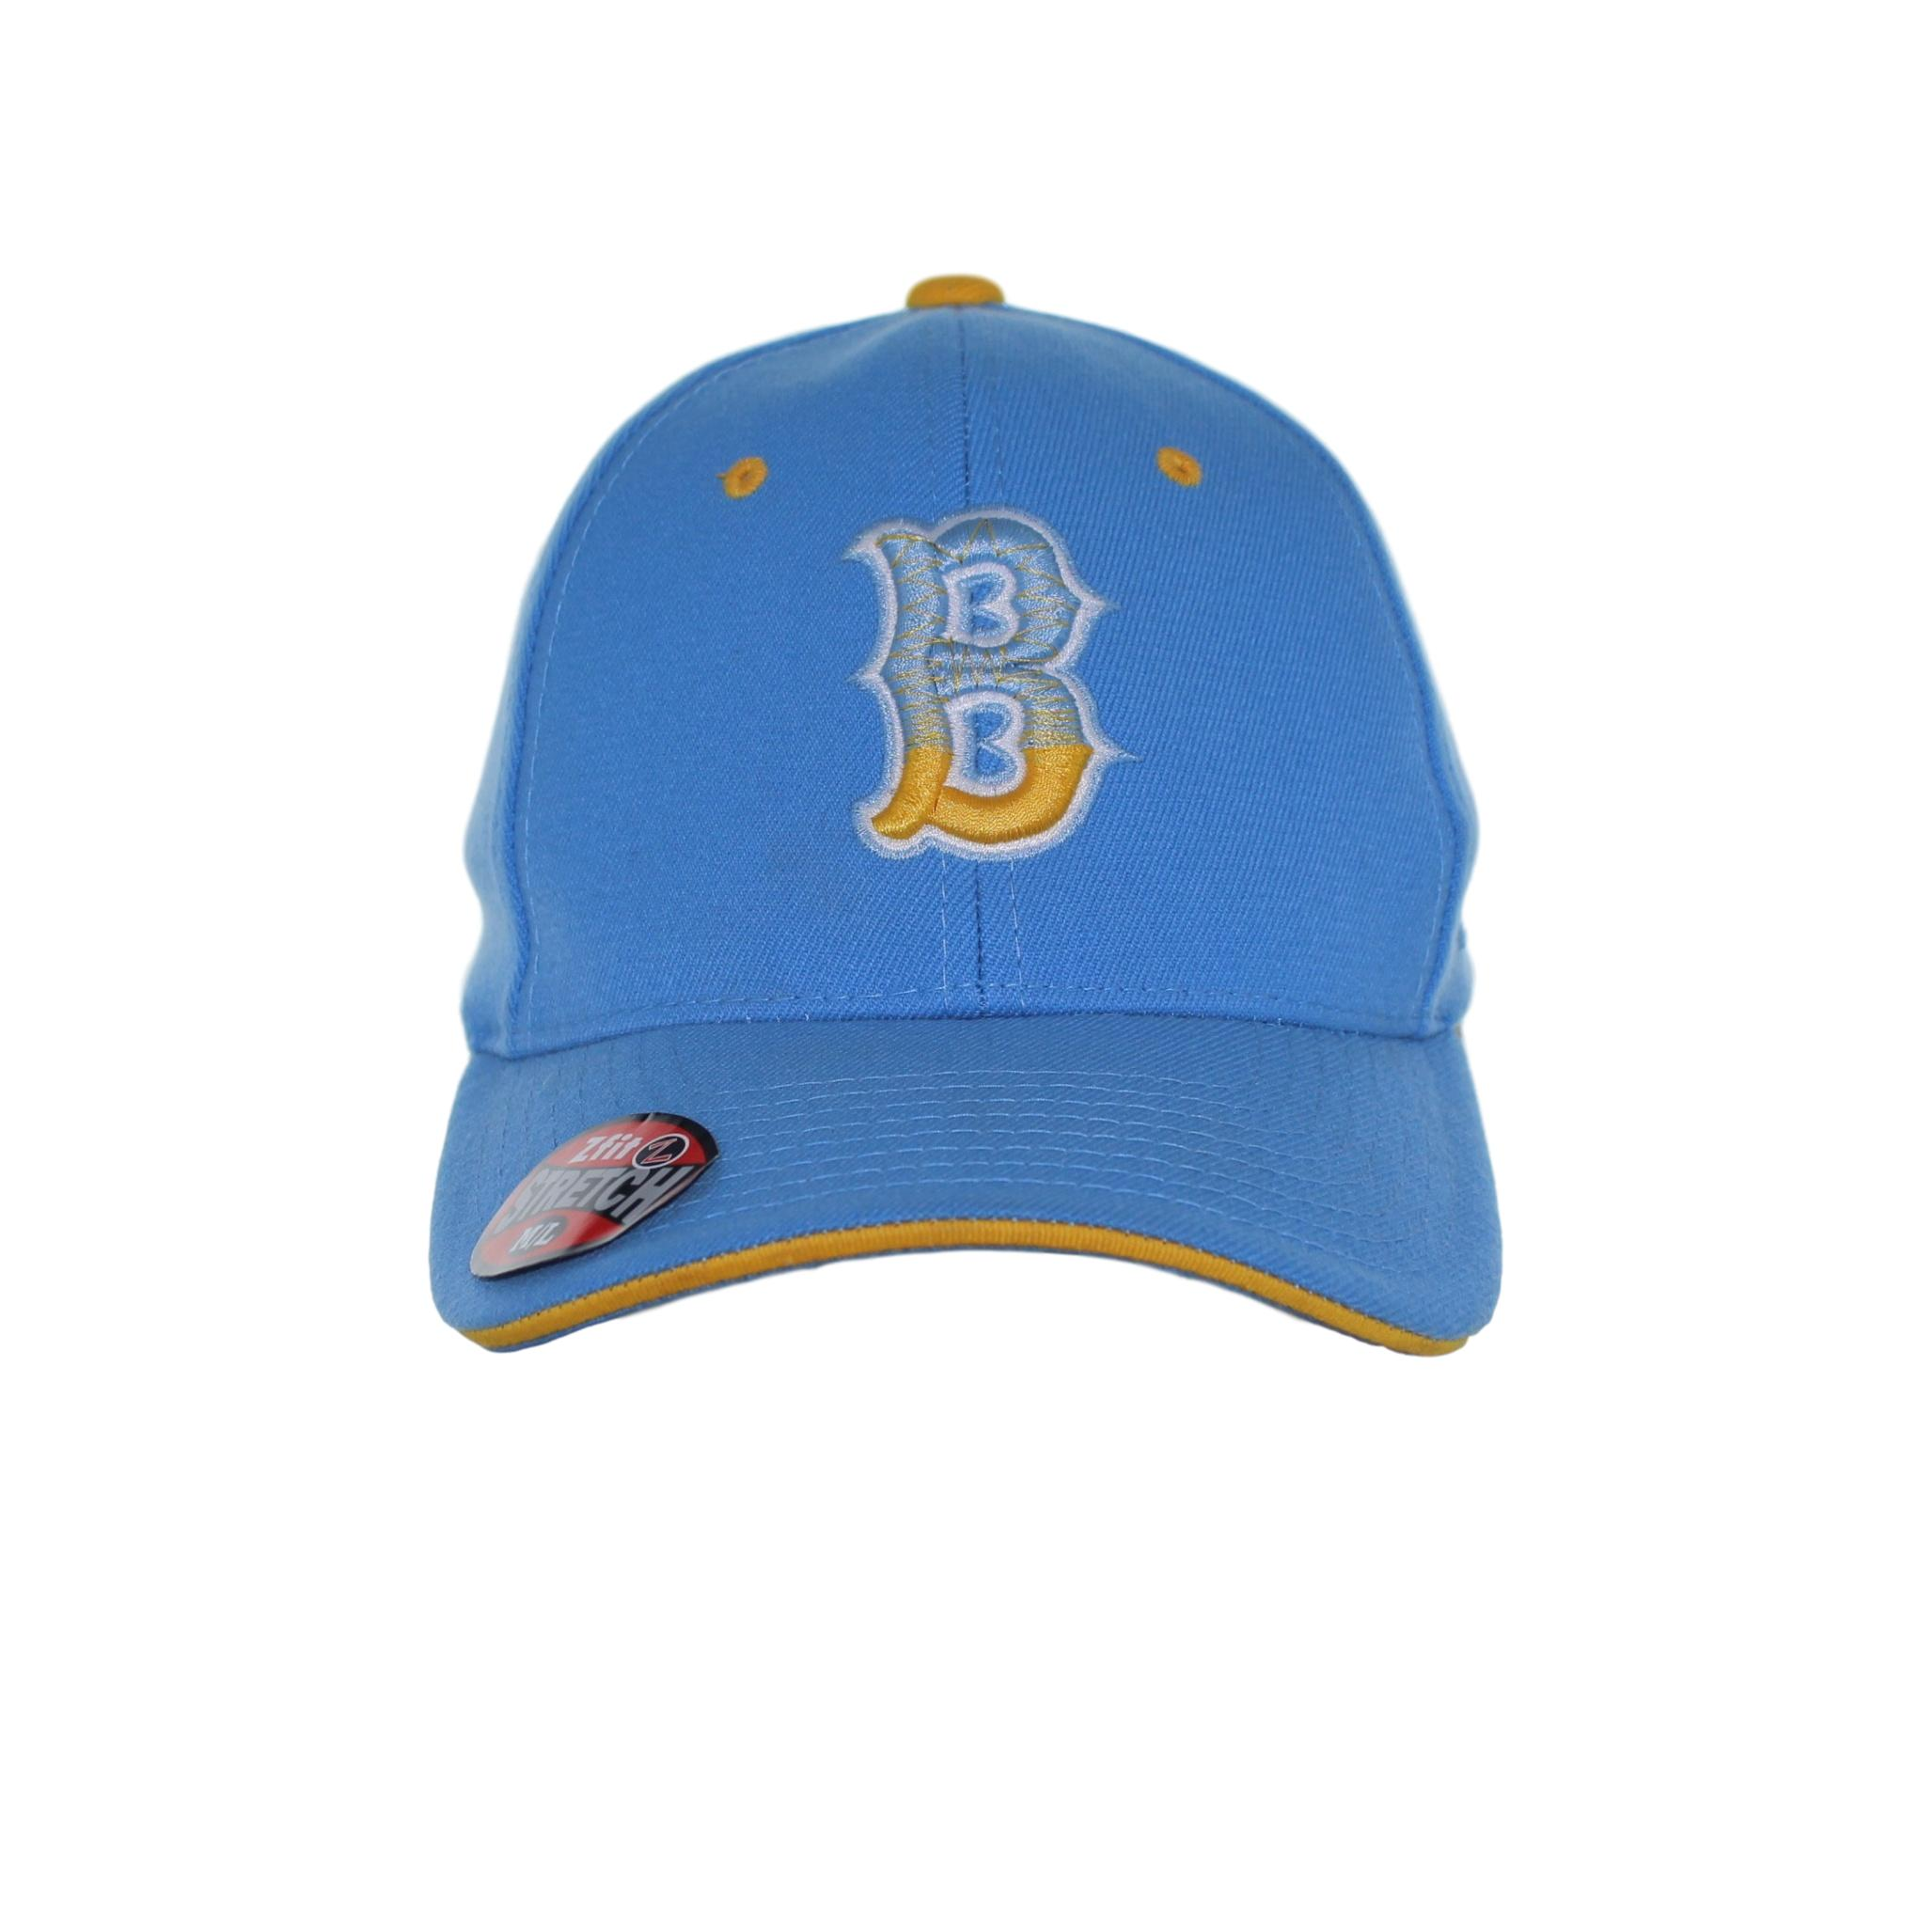 new products 88fca cf1af best price ucla bruins yellow stitch gradient b on blue flex fit hat sel  sportswear de610